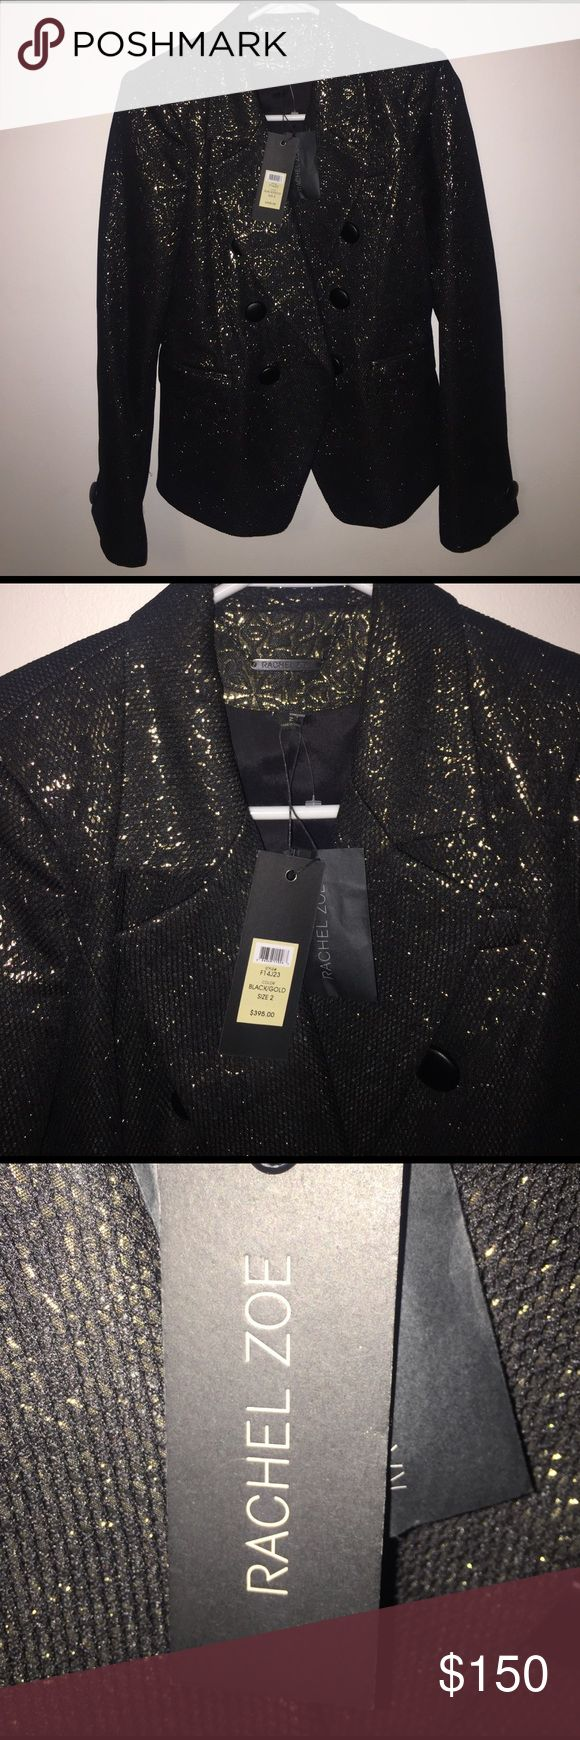 Rachael Zoe black gold Blazer size 2 NWT Rachael Zoe Blazer black gold sparkle NWT style F14J23 size 2 perfect for all occasions please see tag for more information Rachel Zoe Jackets & Coats Blazers